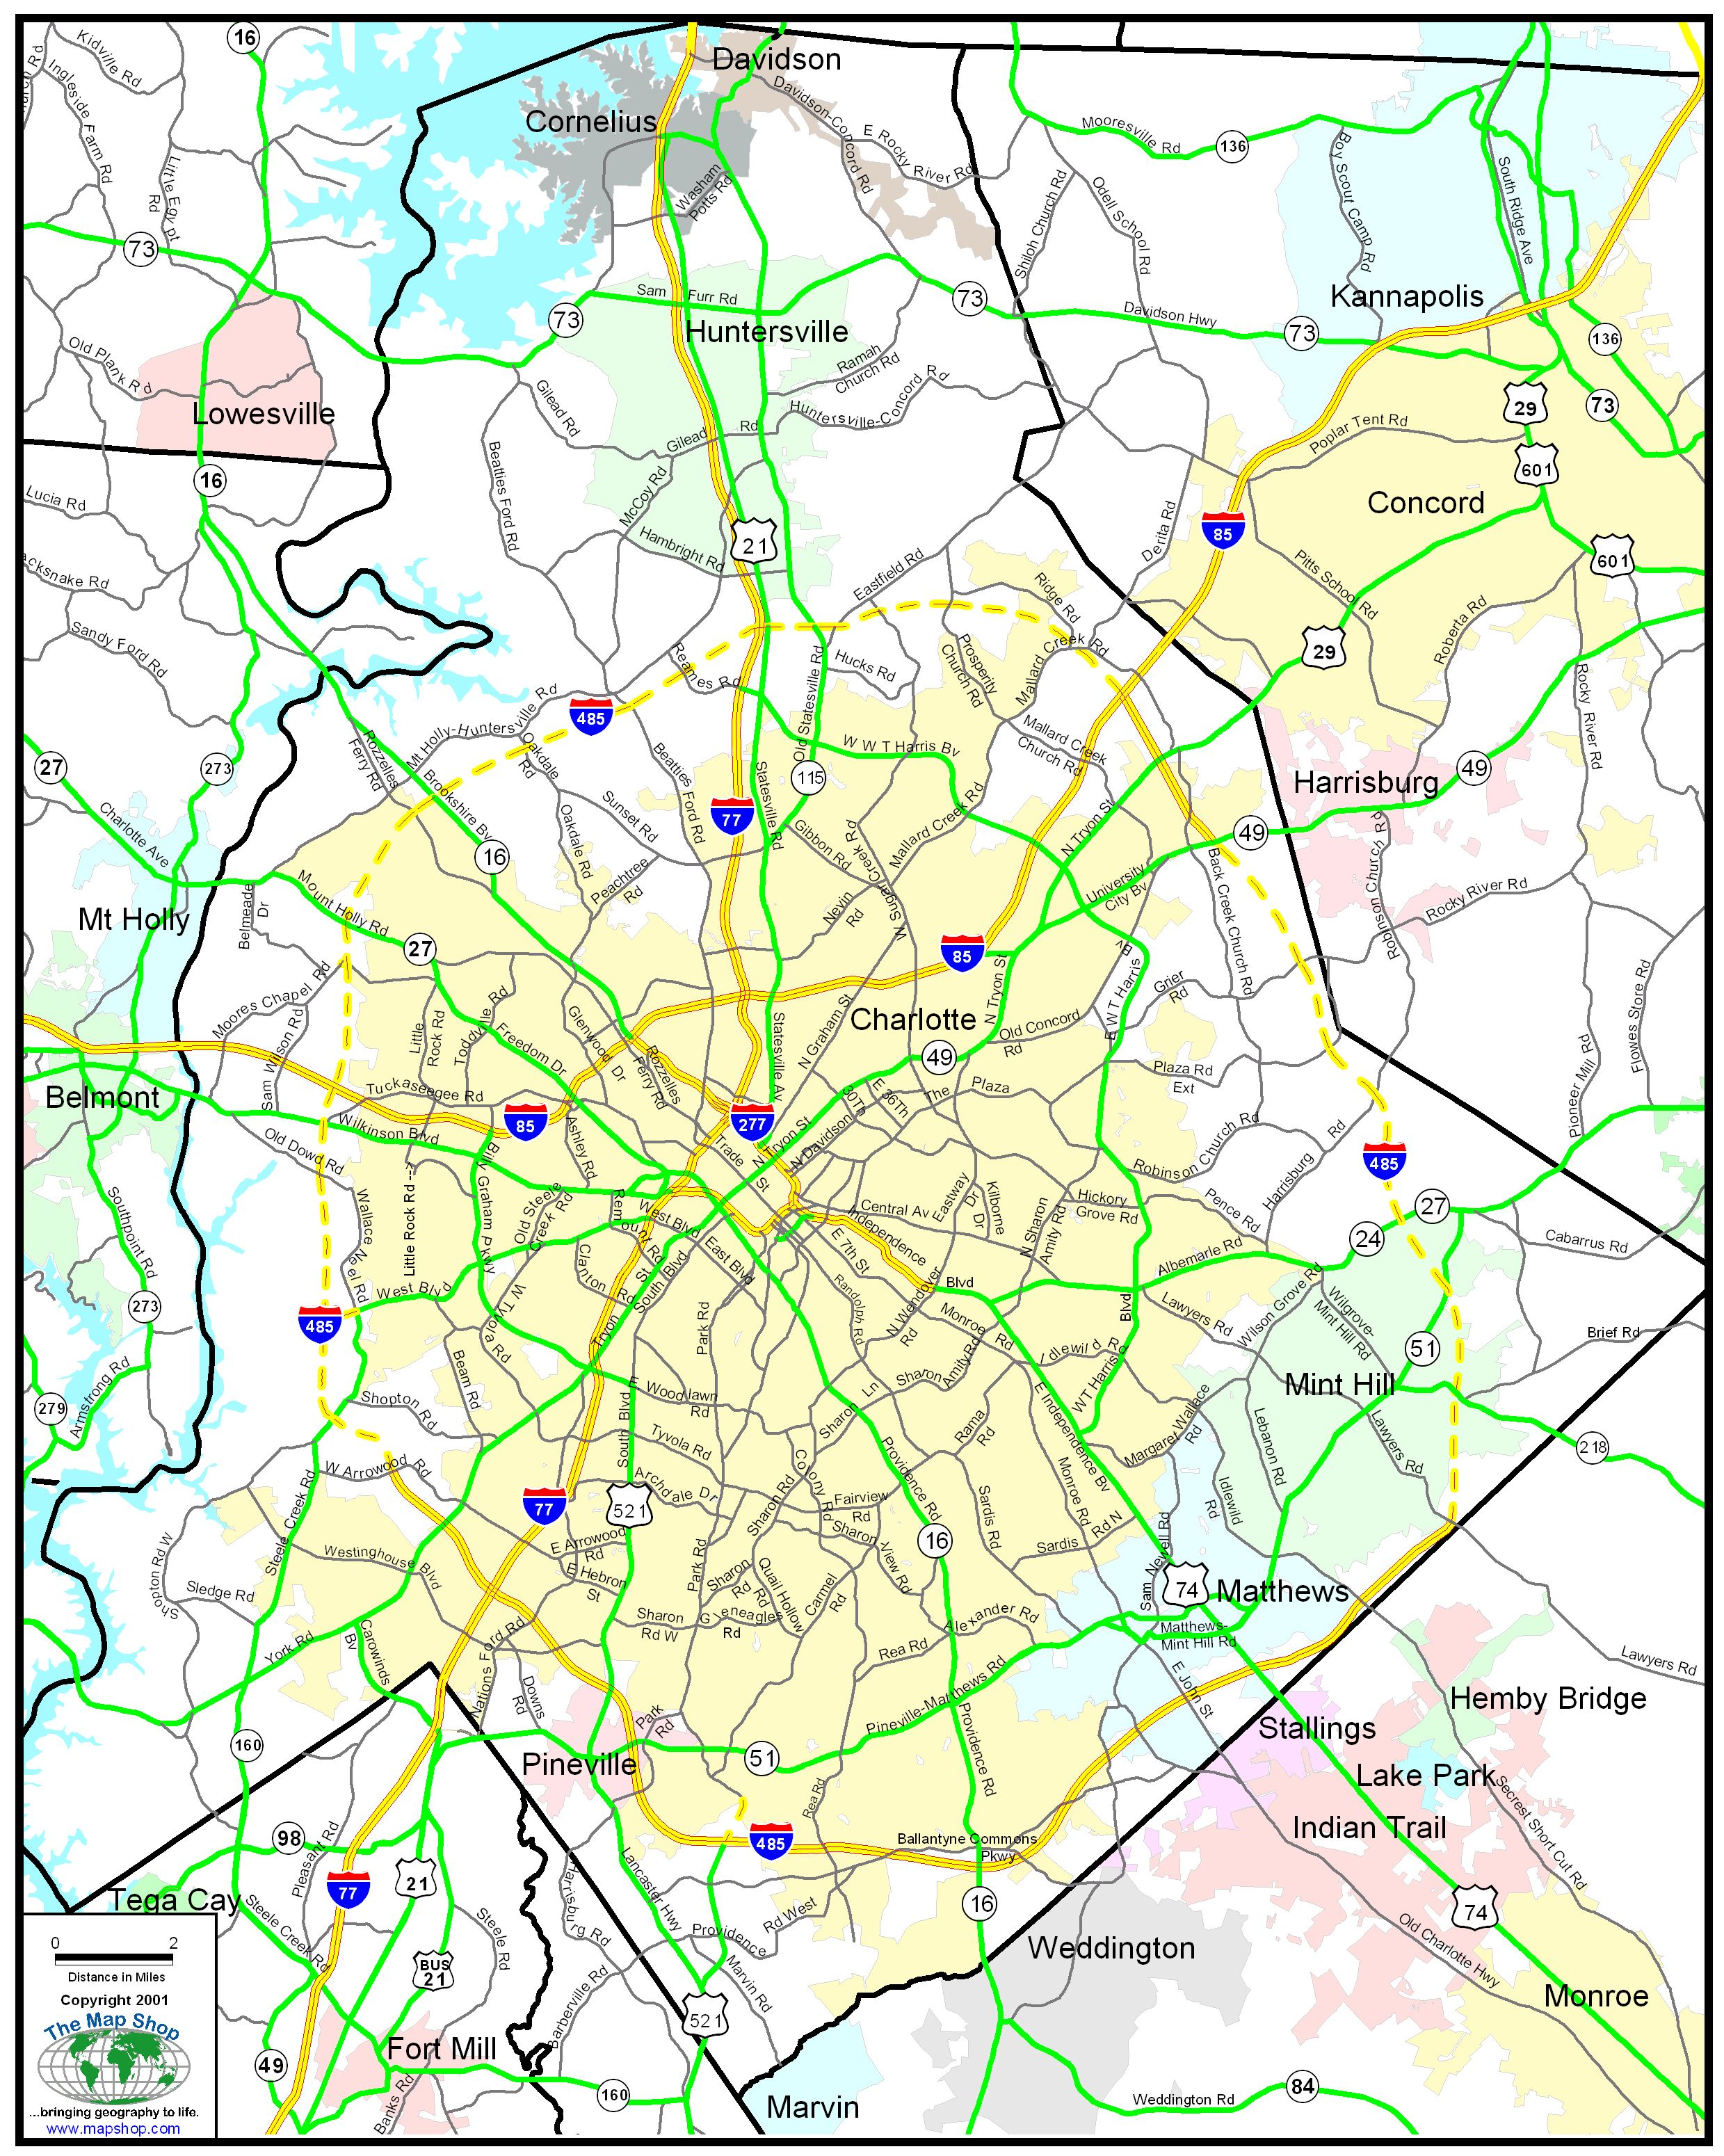 Maps – Mecklenburg County